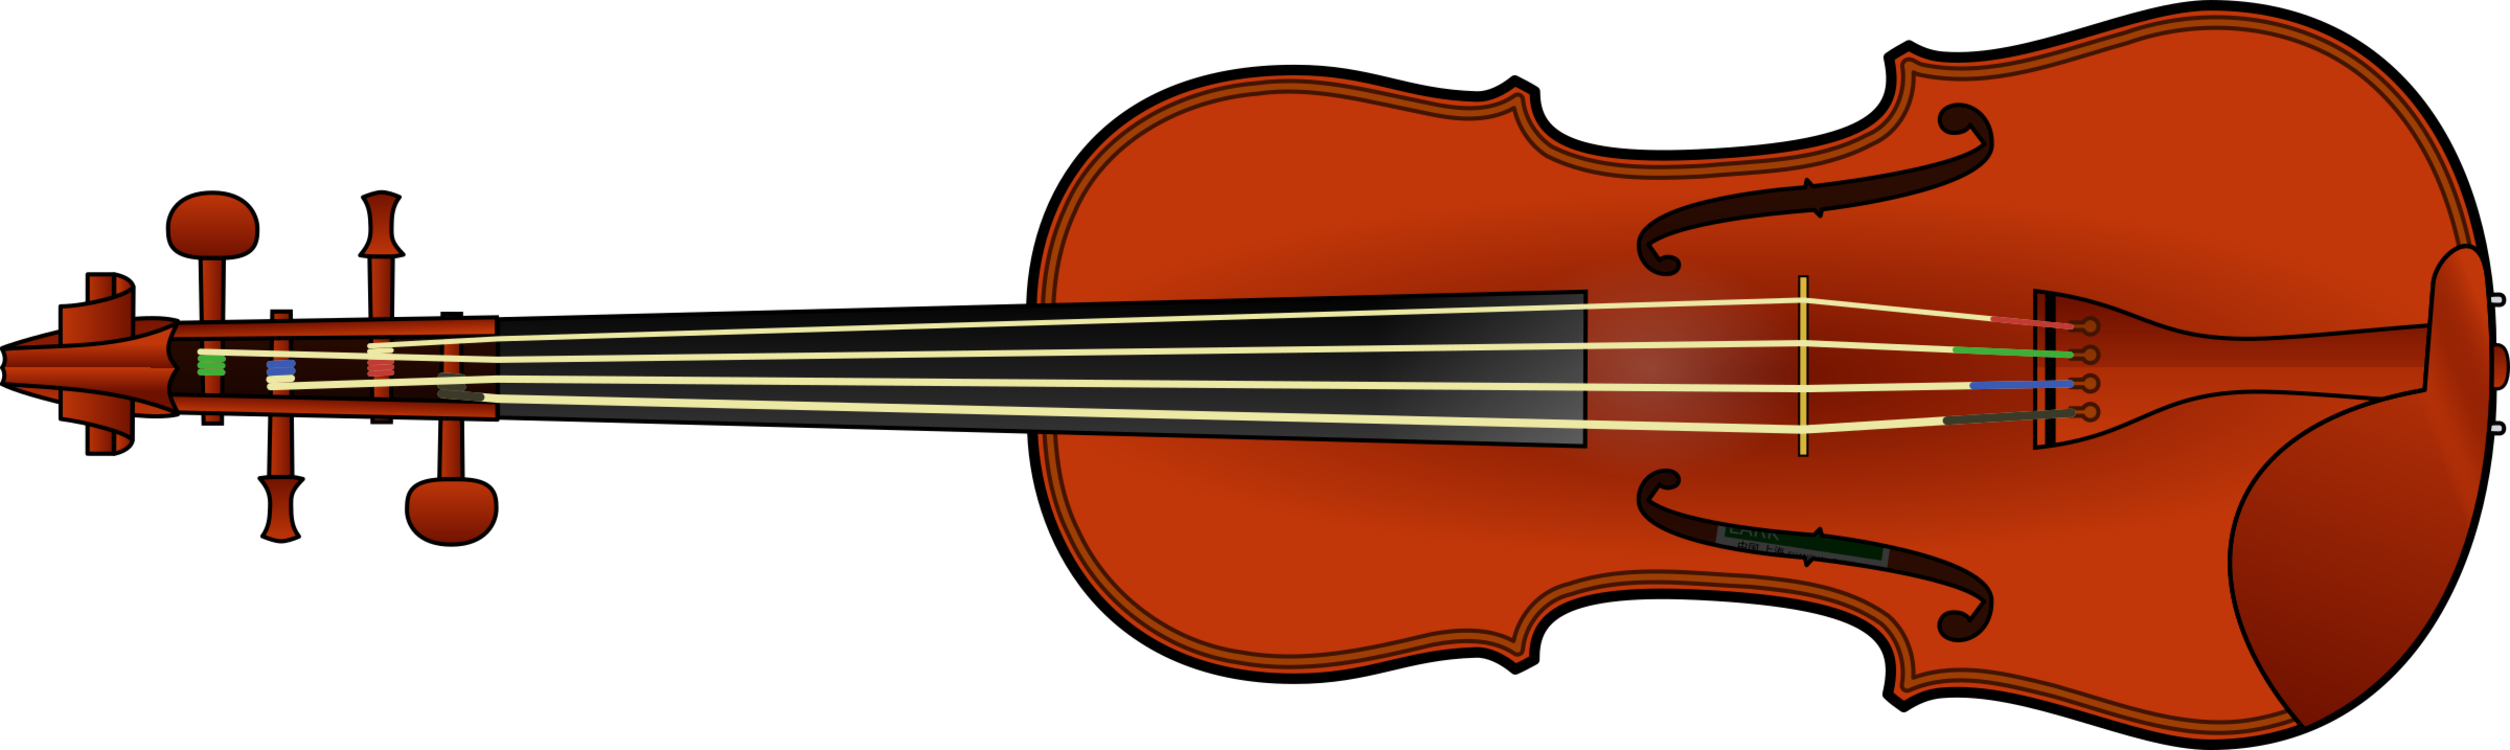 Guitar clipart violin. Musical instruments fiddle string